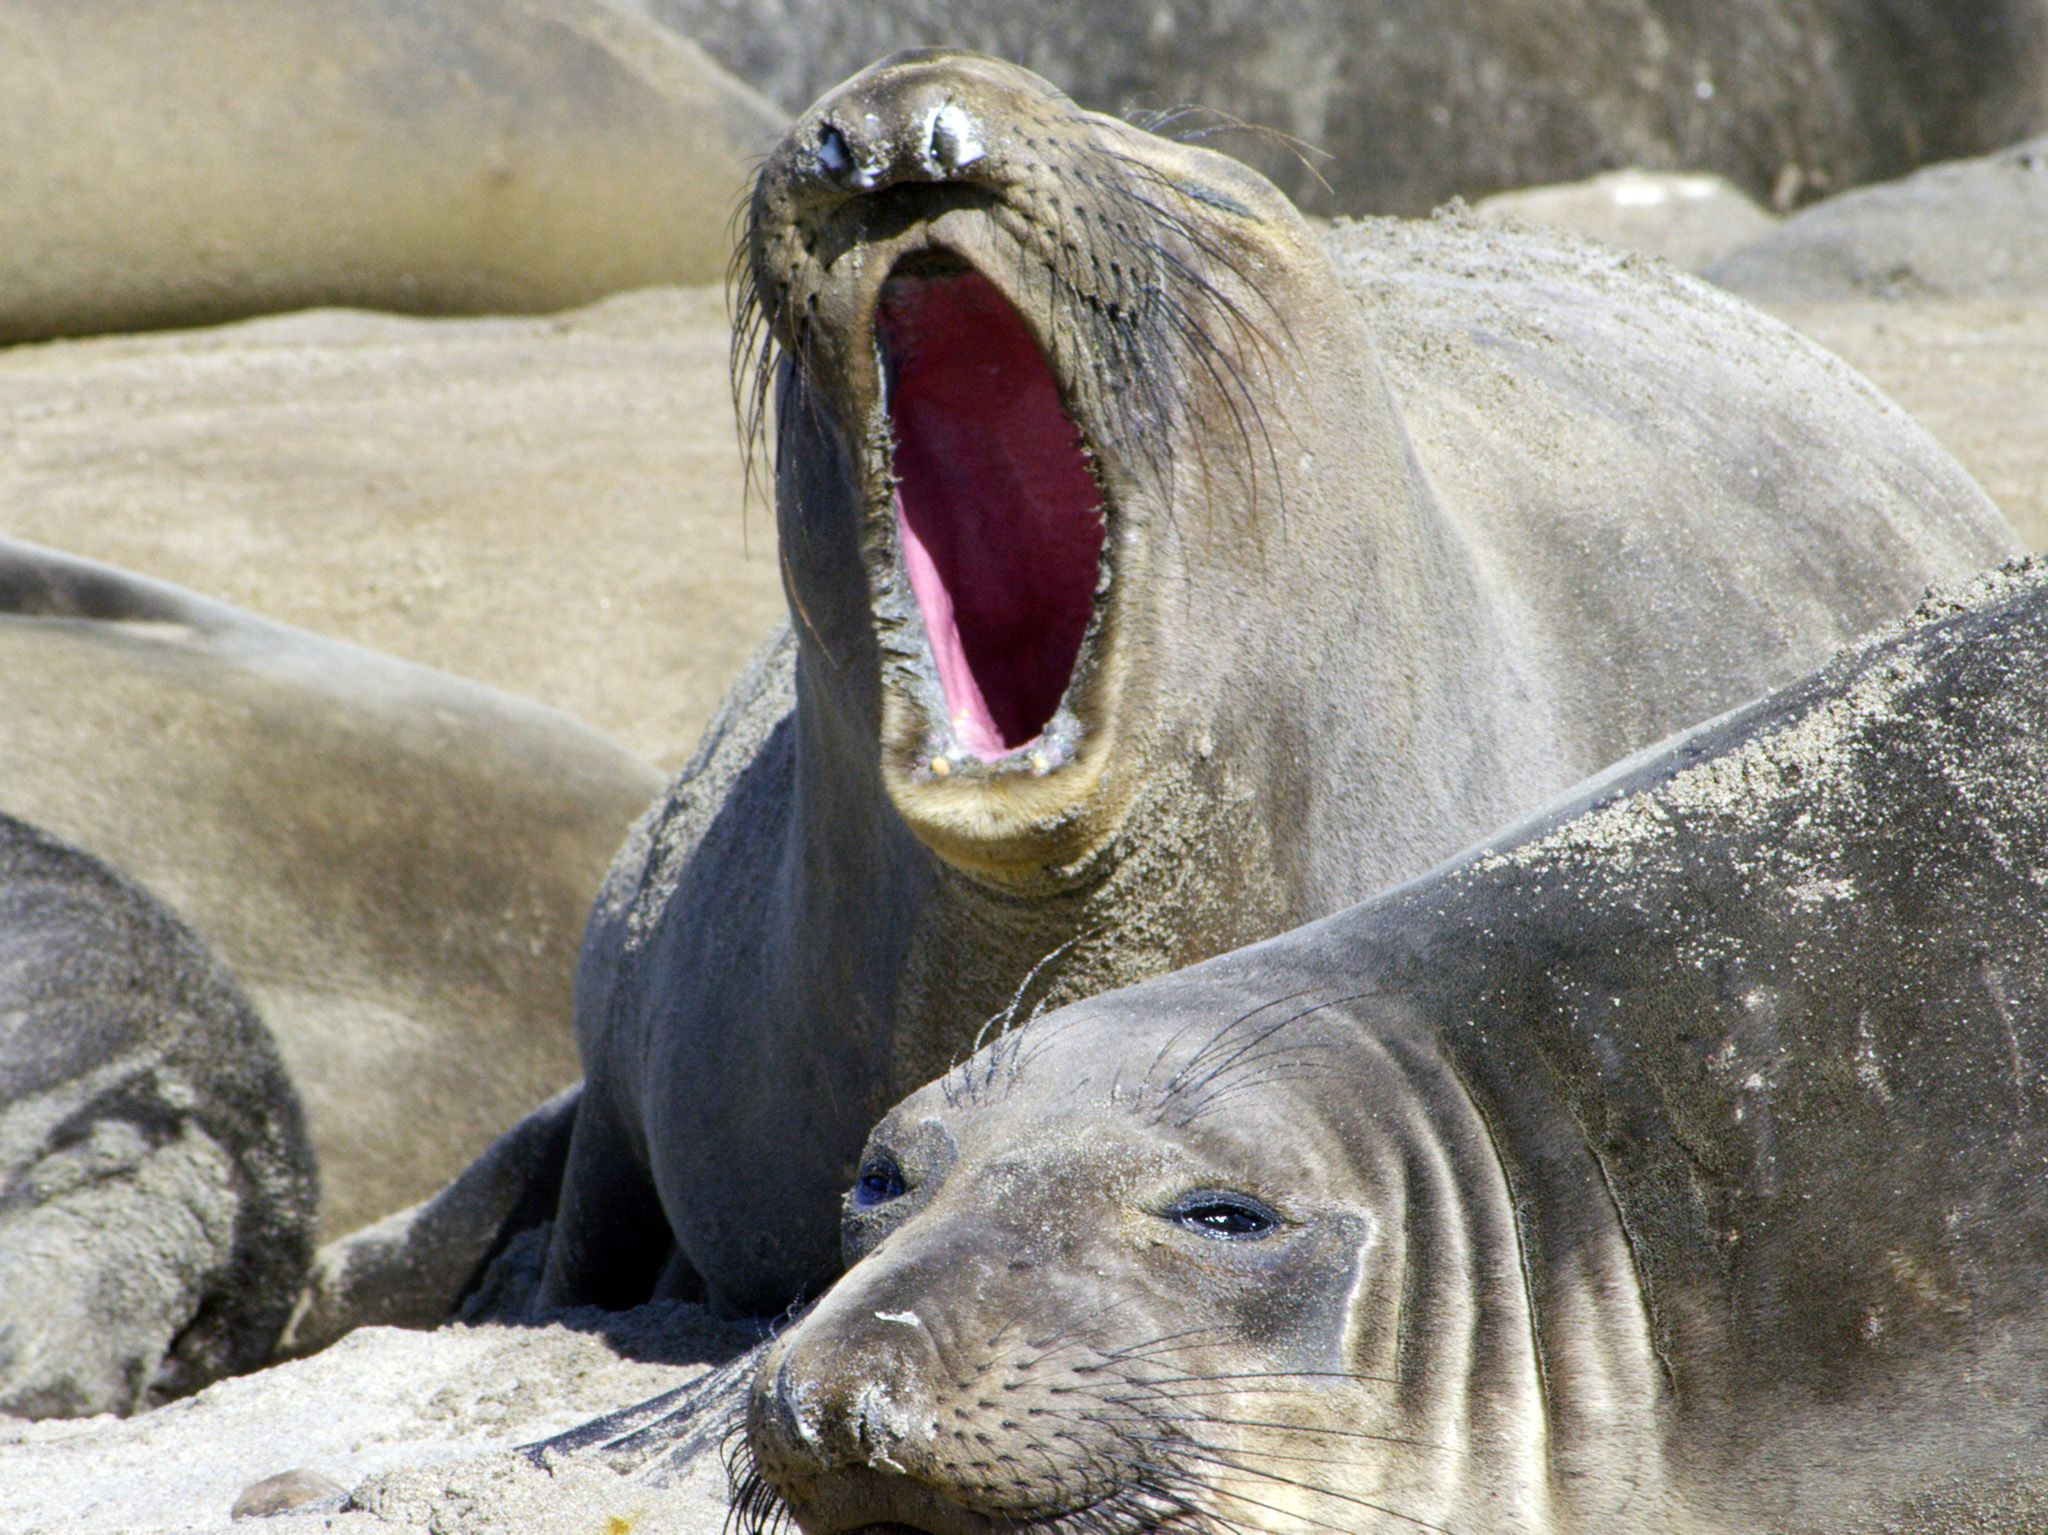 Big Sur, CA:  An Elephant Seal yawning while on the beach. This image is from America the... [Photo of the day - July 2018]